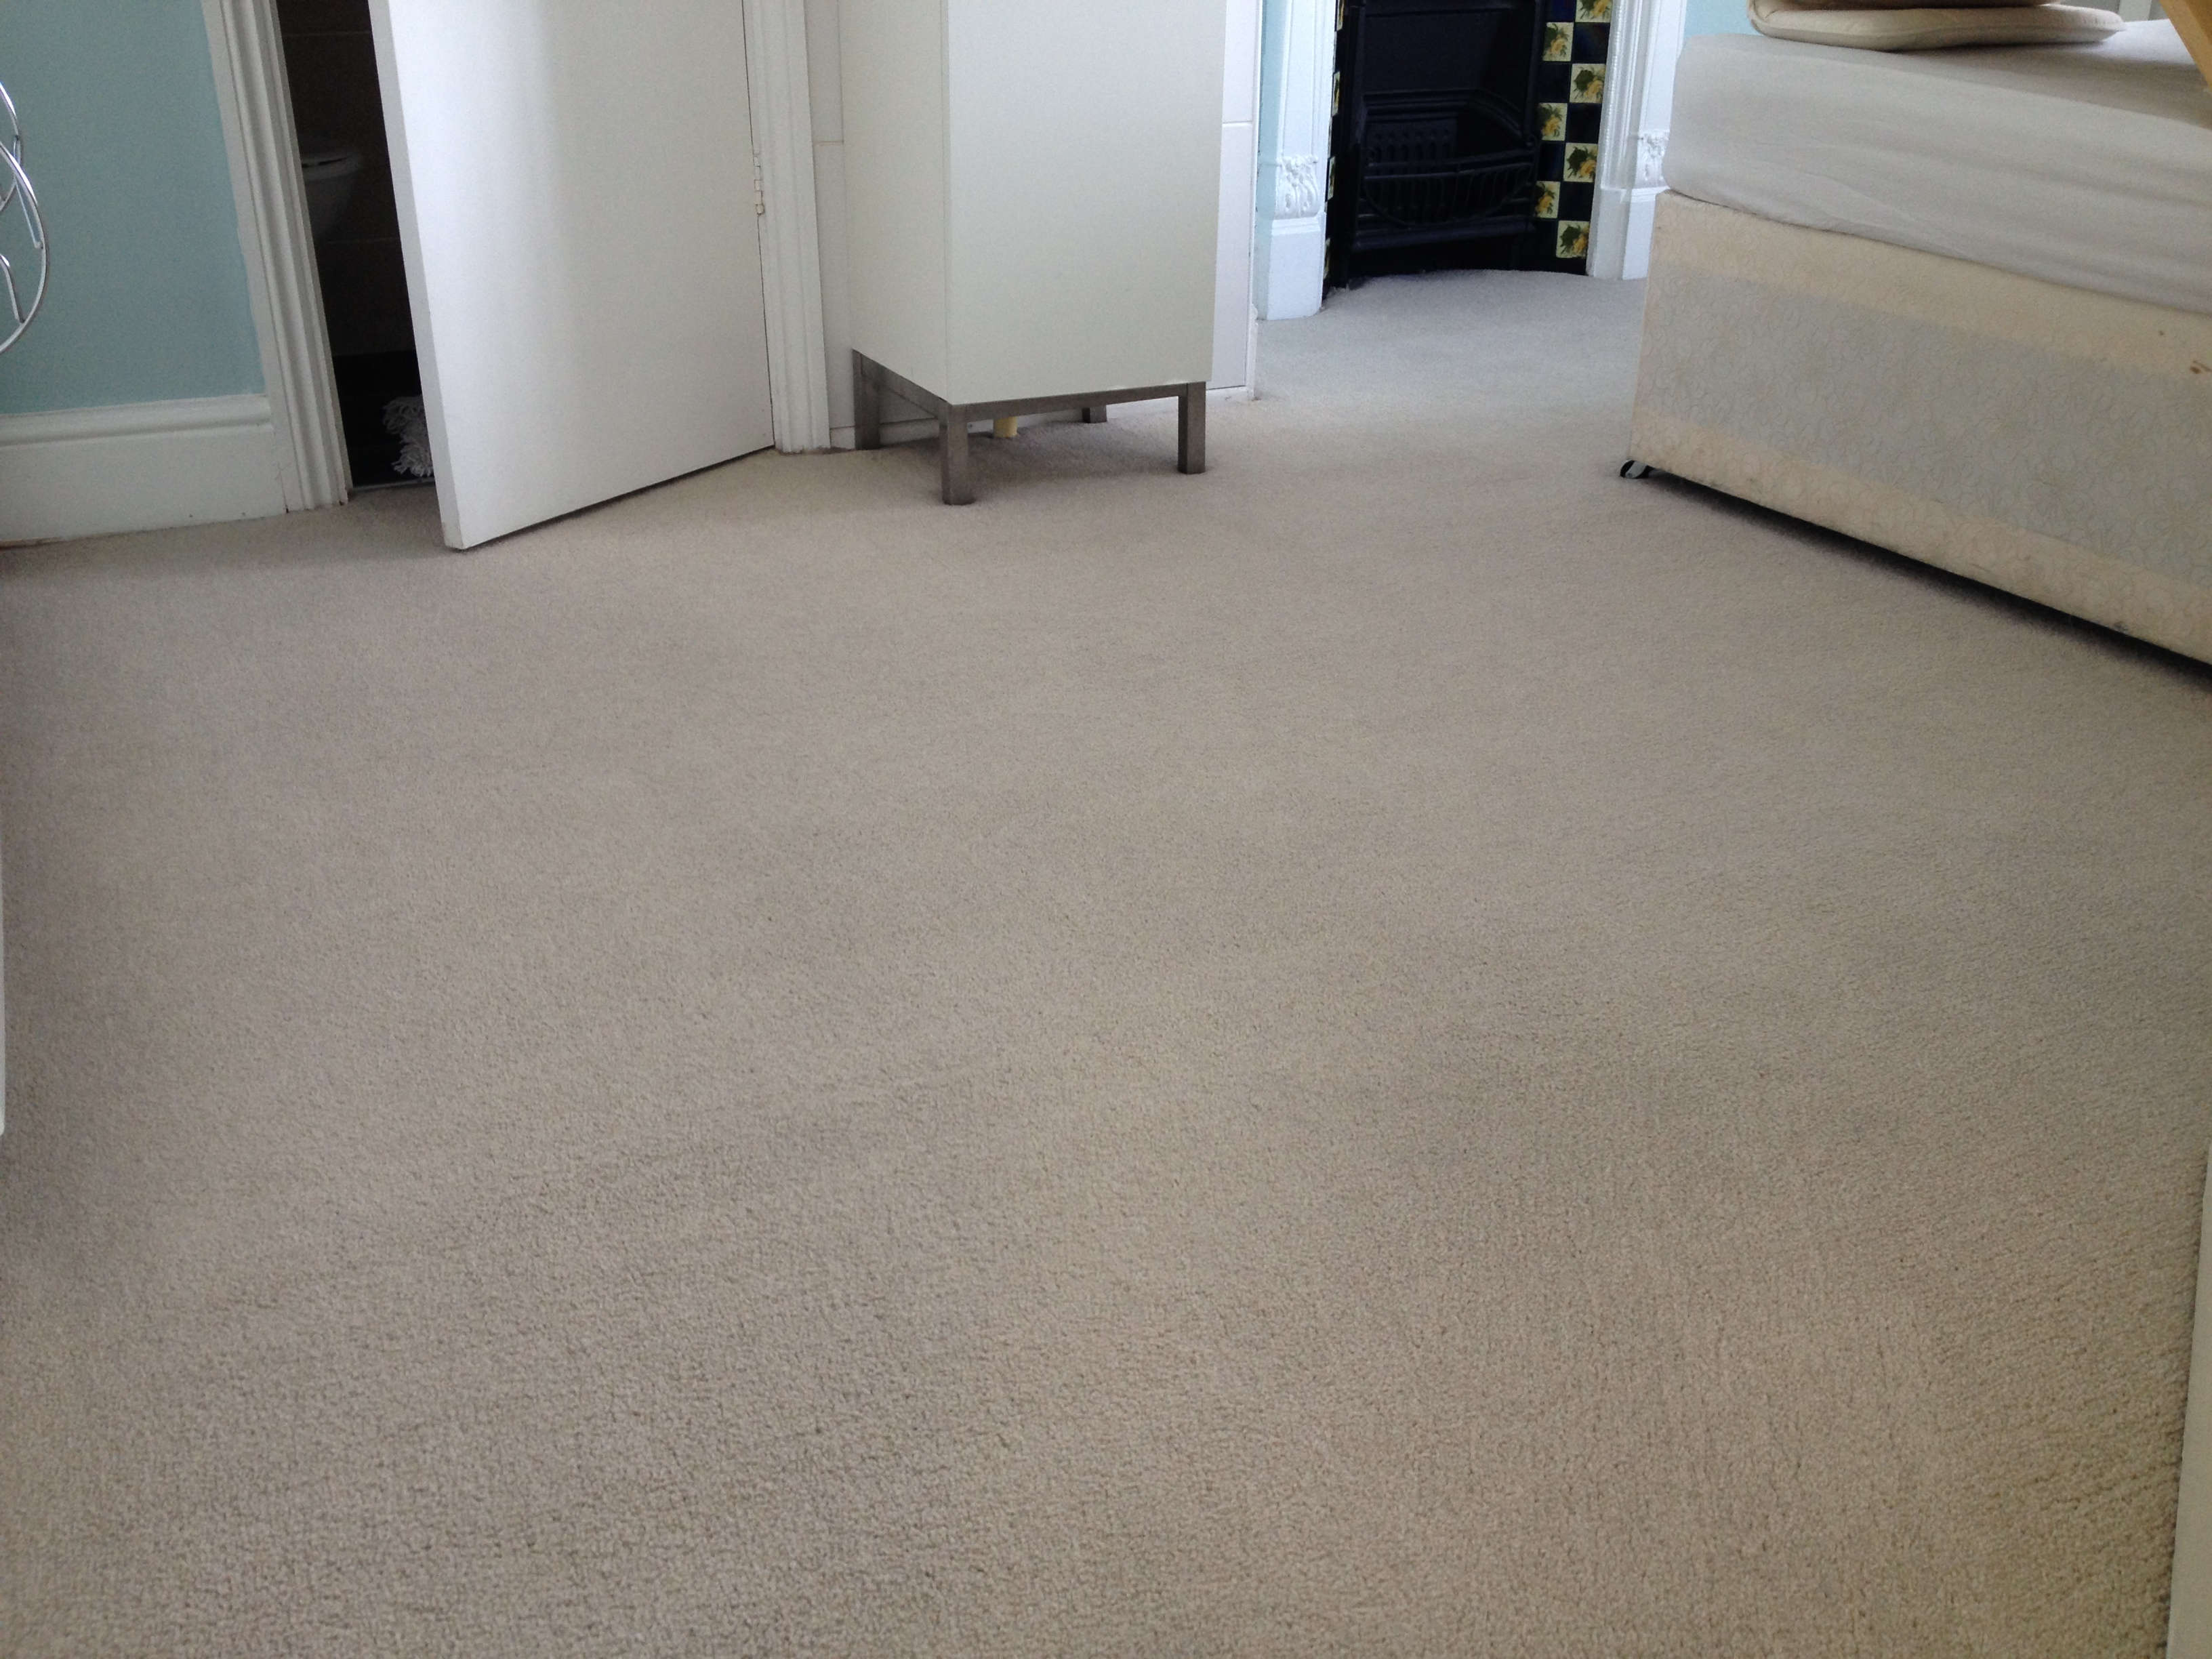 Carpet Cleaning Leamington Spa - Best Truck Mount Carpet Cleaners